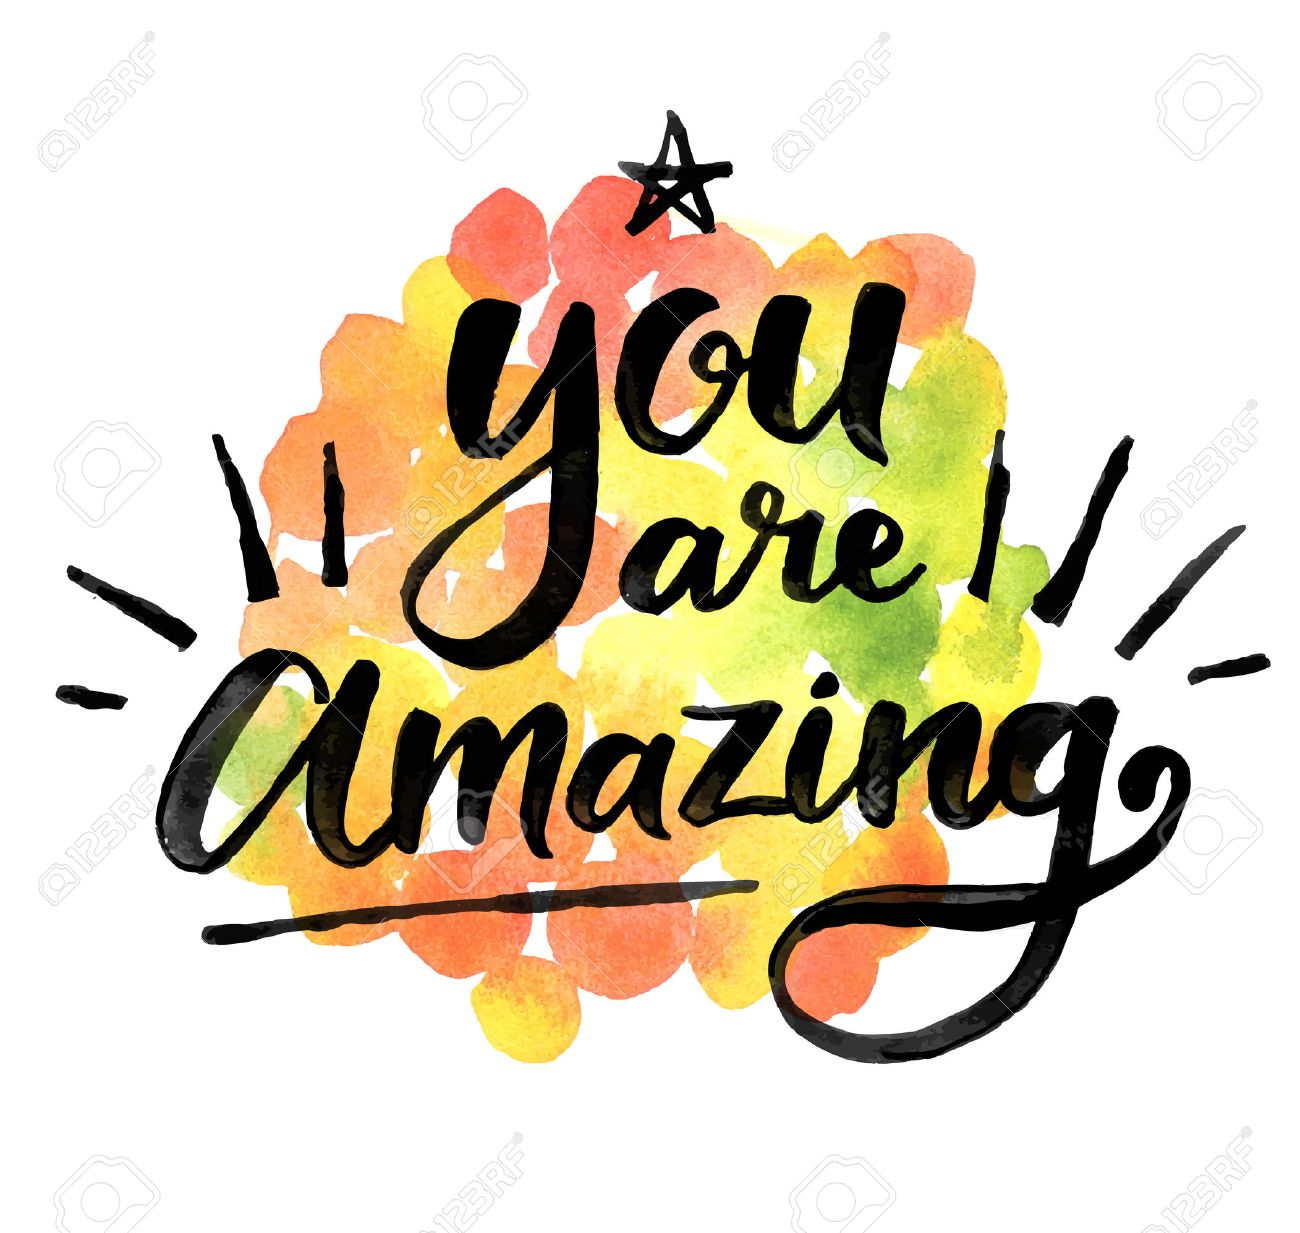 Image result for you are amazing